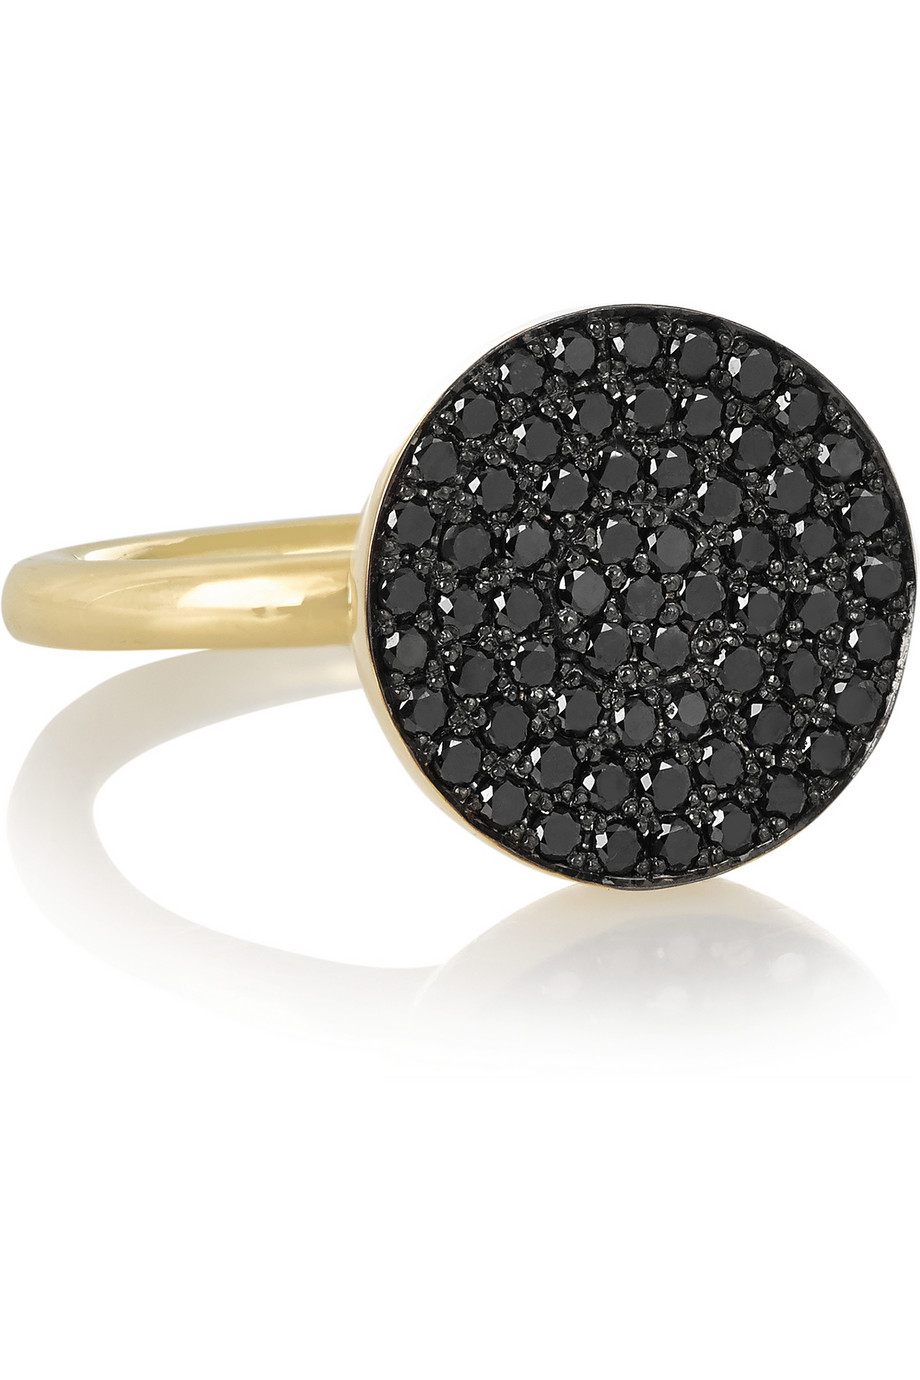 Elena Votsi  Cyclos 18-karat gold diamond ring, $5,450,  available at Net-A-Porter .